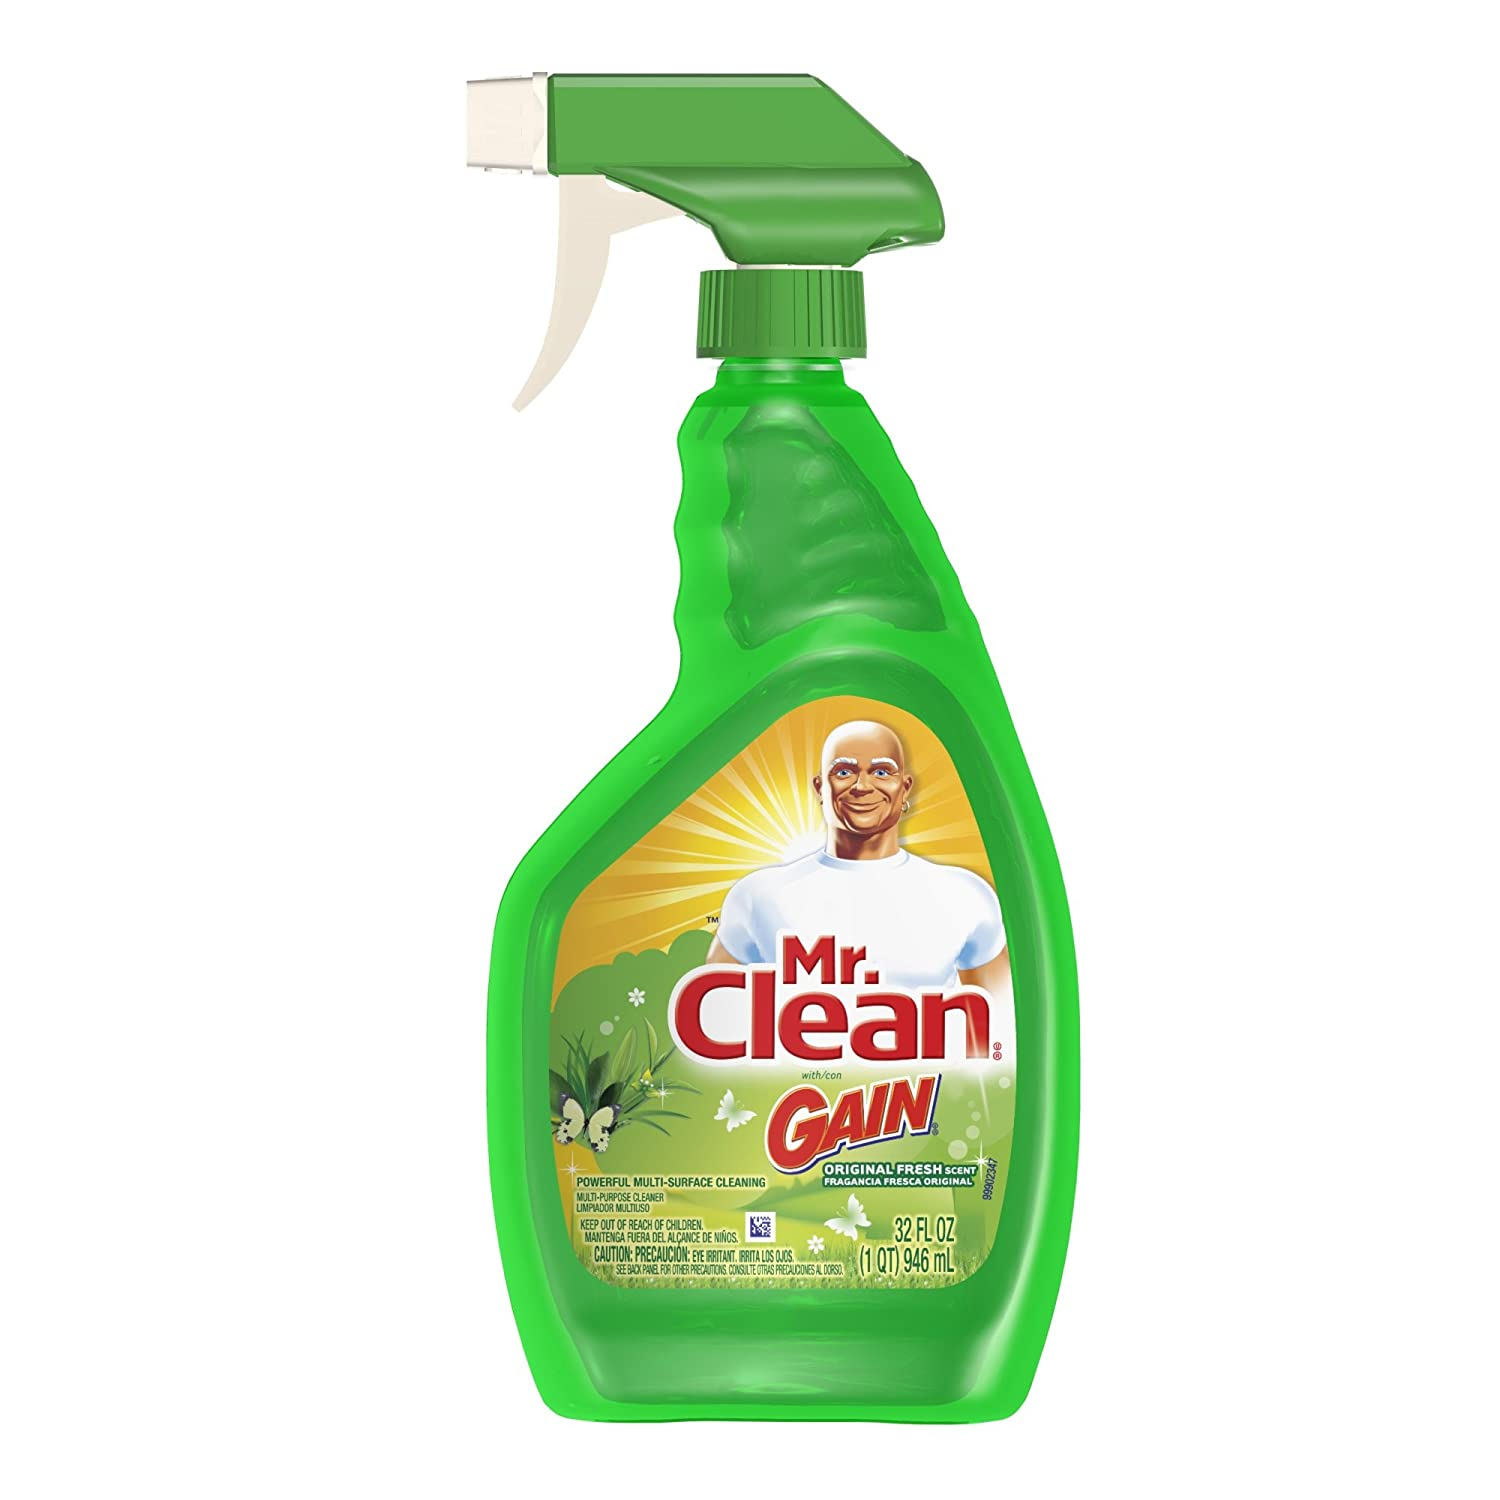 Amazon.com: Mr. Clean With Gain, Multi Surface Spray Cleaner, Original  Fresh Scent, 32 Oz Spray Bottle, (Pack Of 3): Health U0026 Personal Care